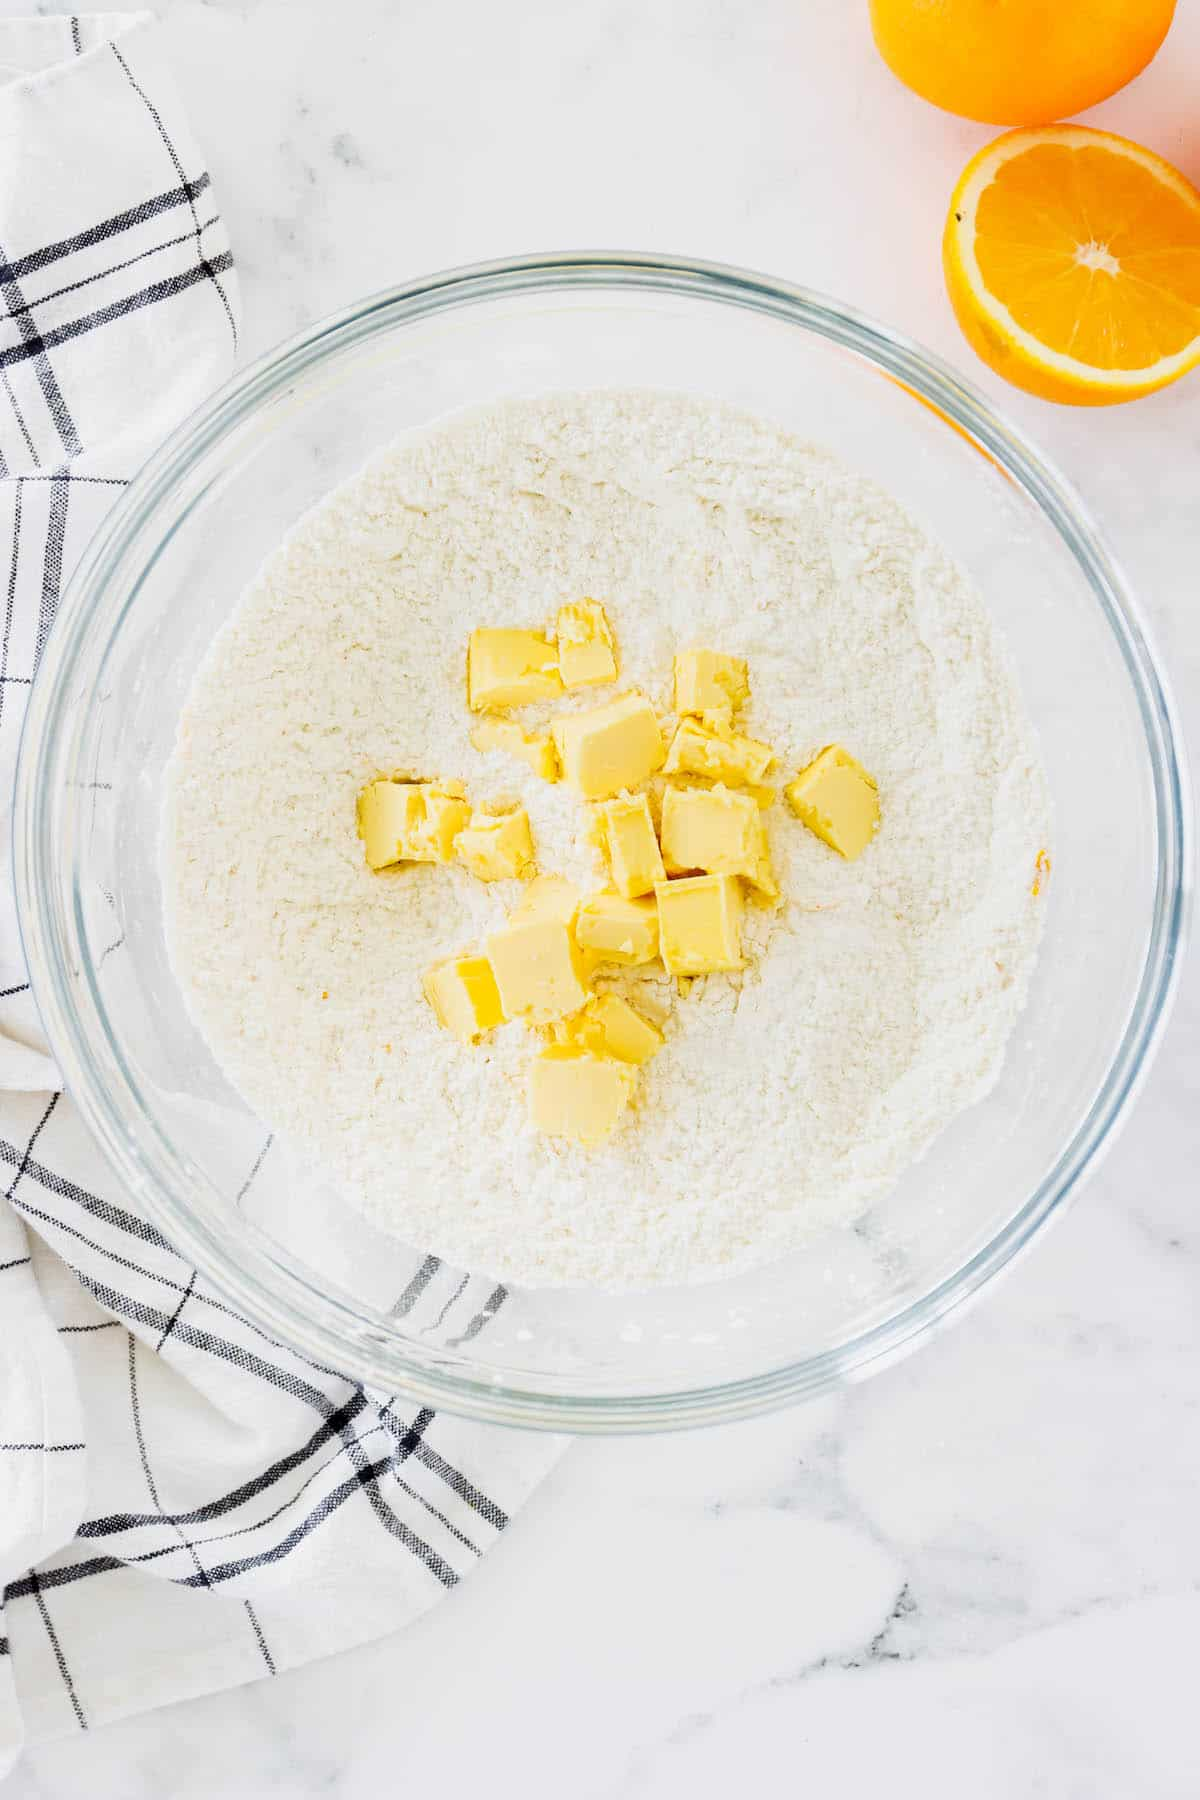 Cold butter being in a bowl of flour